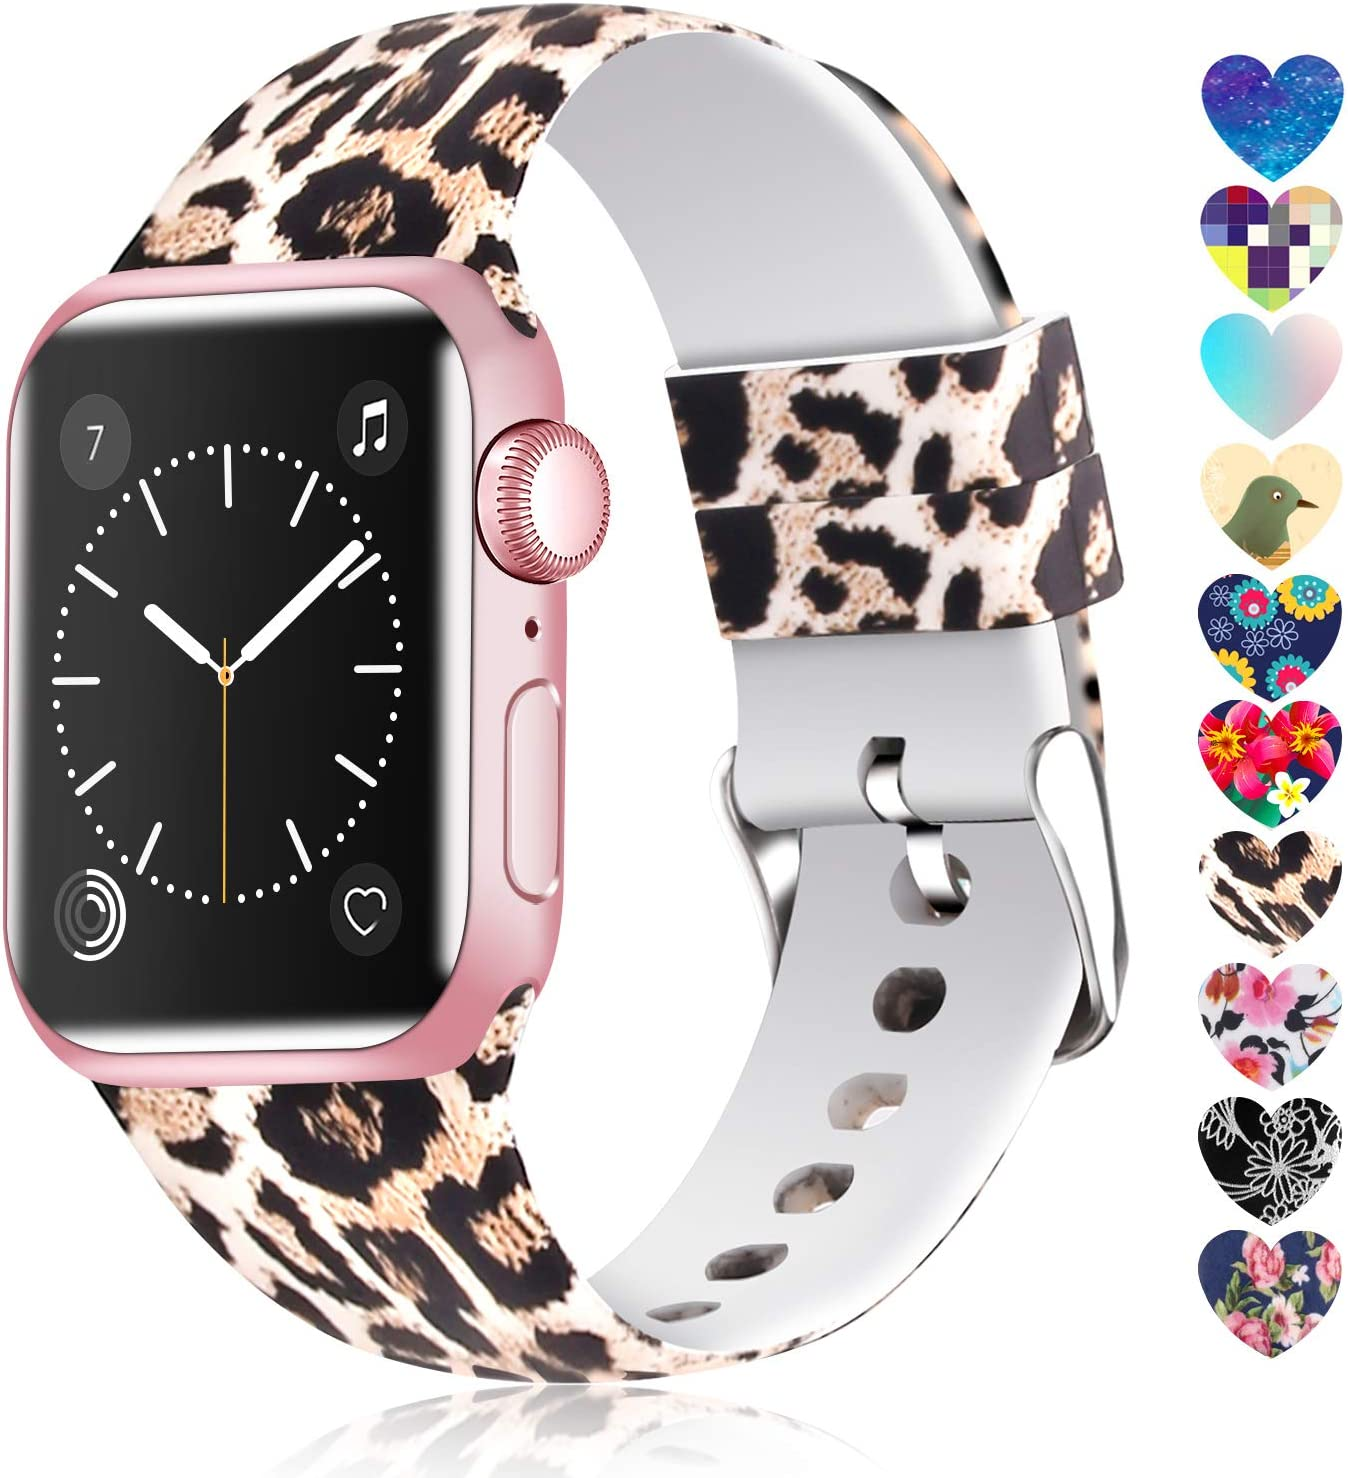 Moretek Colorful band Compatible for Apple Watch 38mm 42mm 40mm 44mm,Soft Silicone Sport Replacement Strap for iWatch Series 5 4 3 2 1, Nike+, Edition Women Men (Flower 11, 42/44mm)